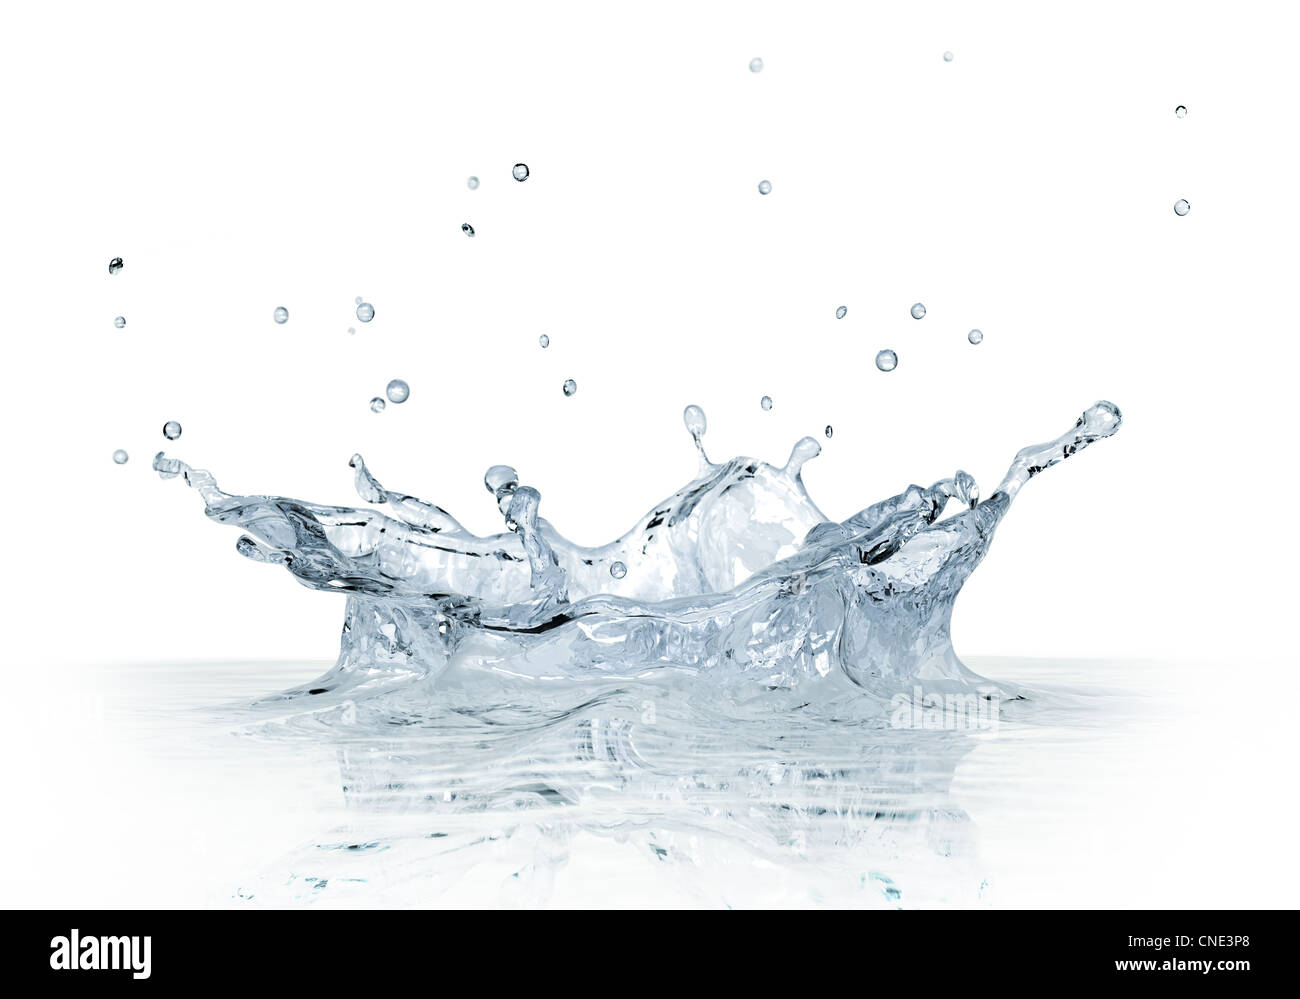 Splash water isolated on white background. - Stock Image